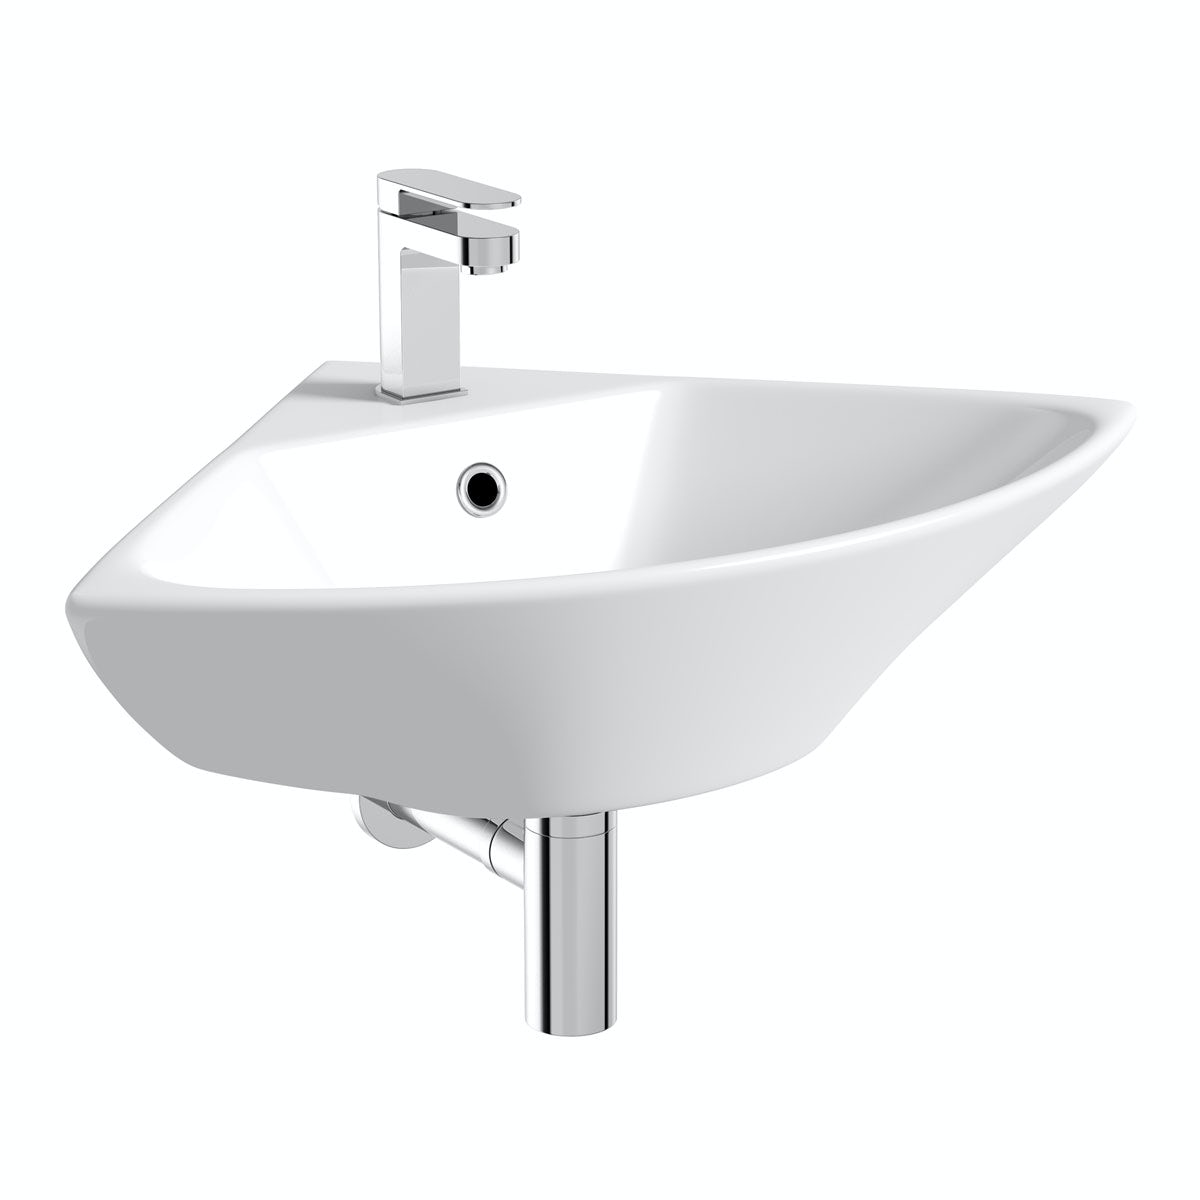 Orchard Derwent Corner Wall Mounted Basin With Waste